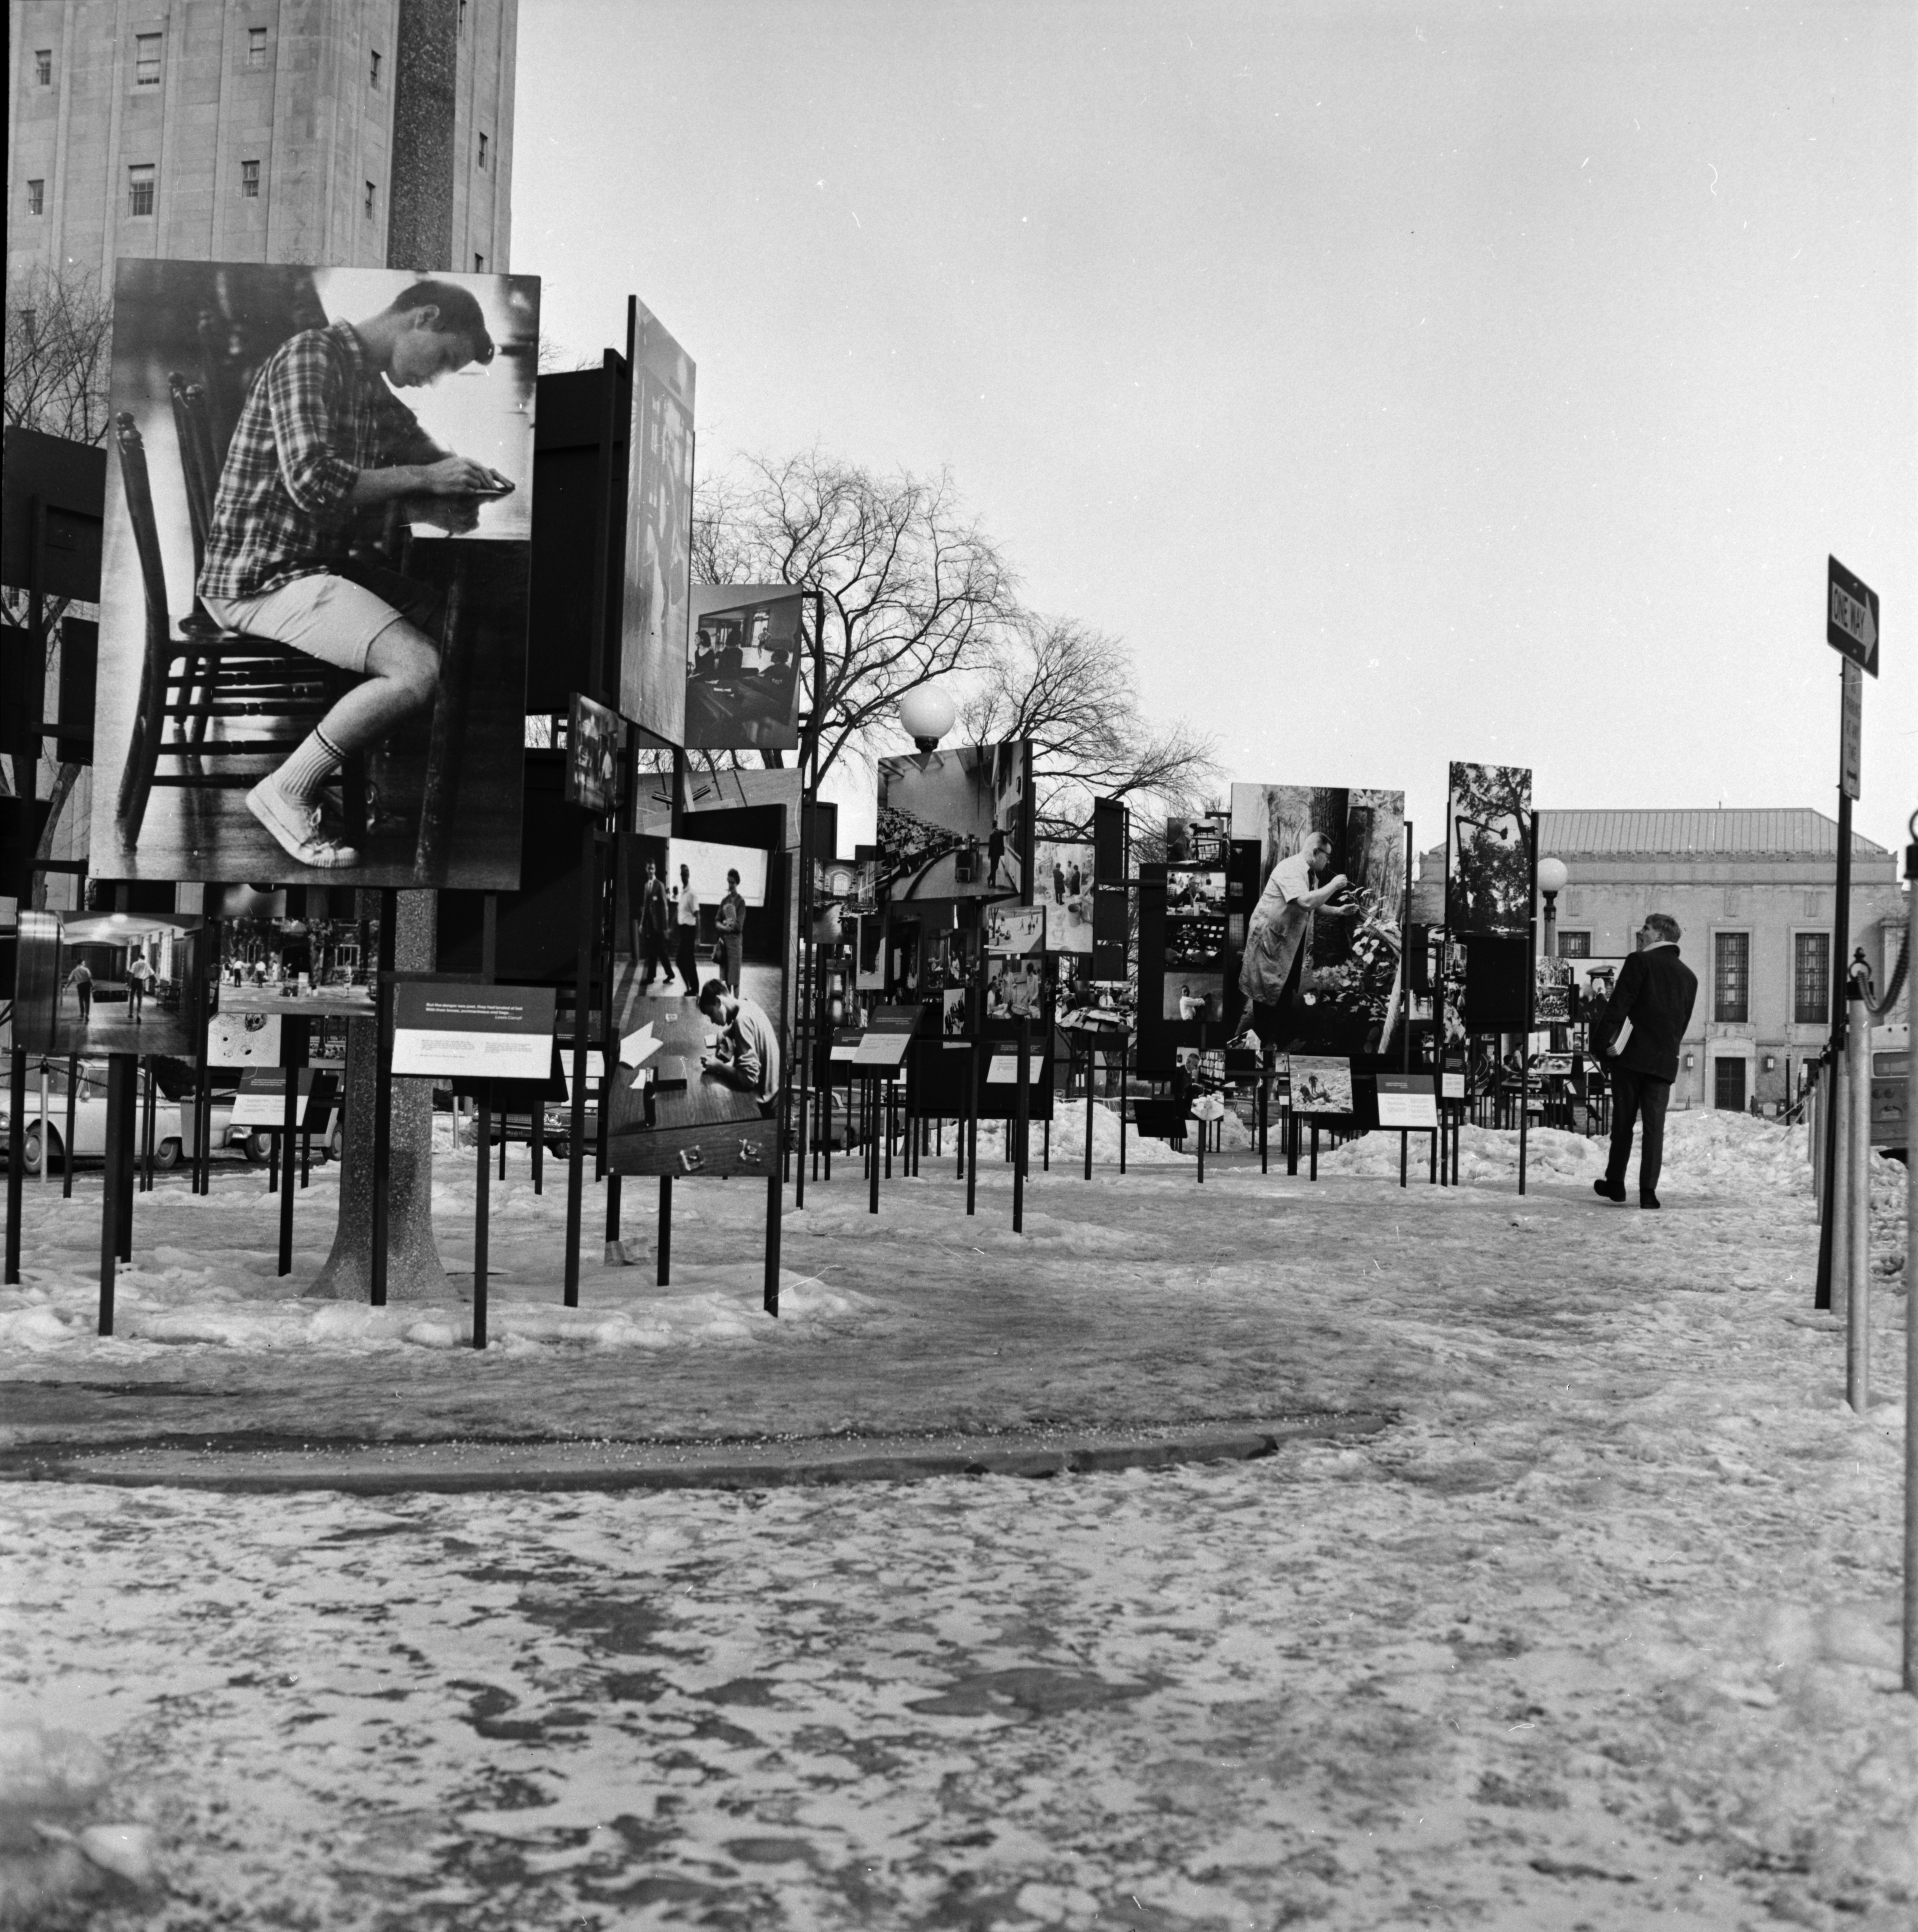 Photography Display at Ingalls Street Mall, February 1967 image